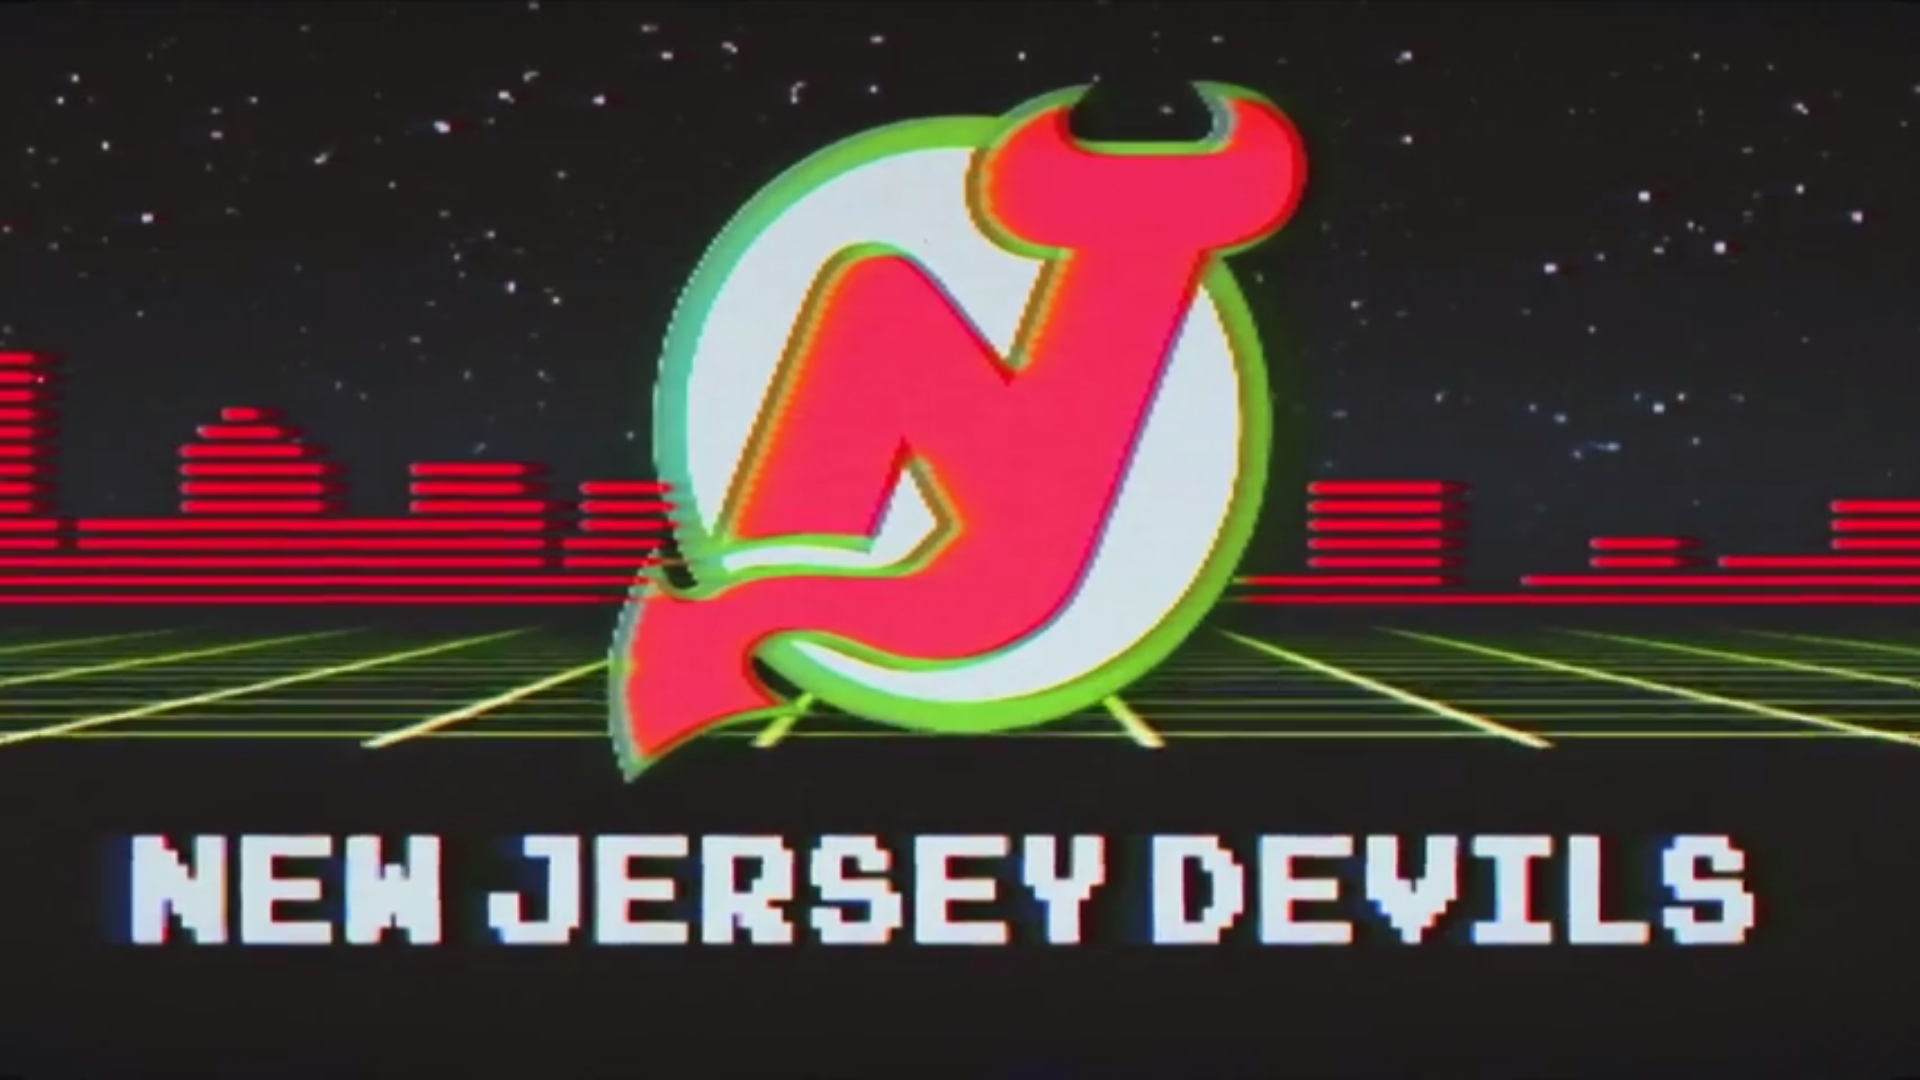 1920x1080 - New Jersey Devils Wallpapers 24